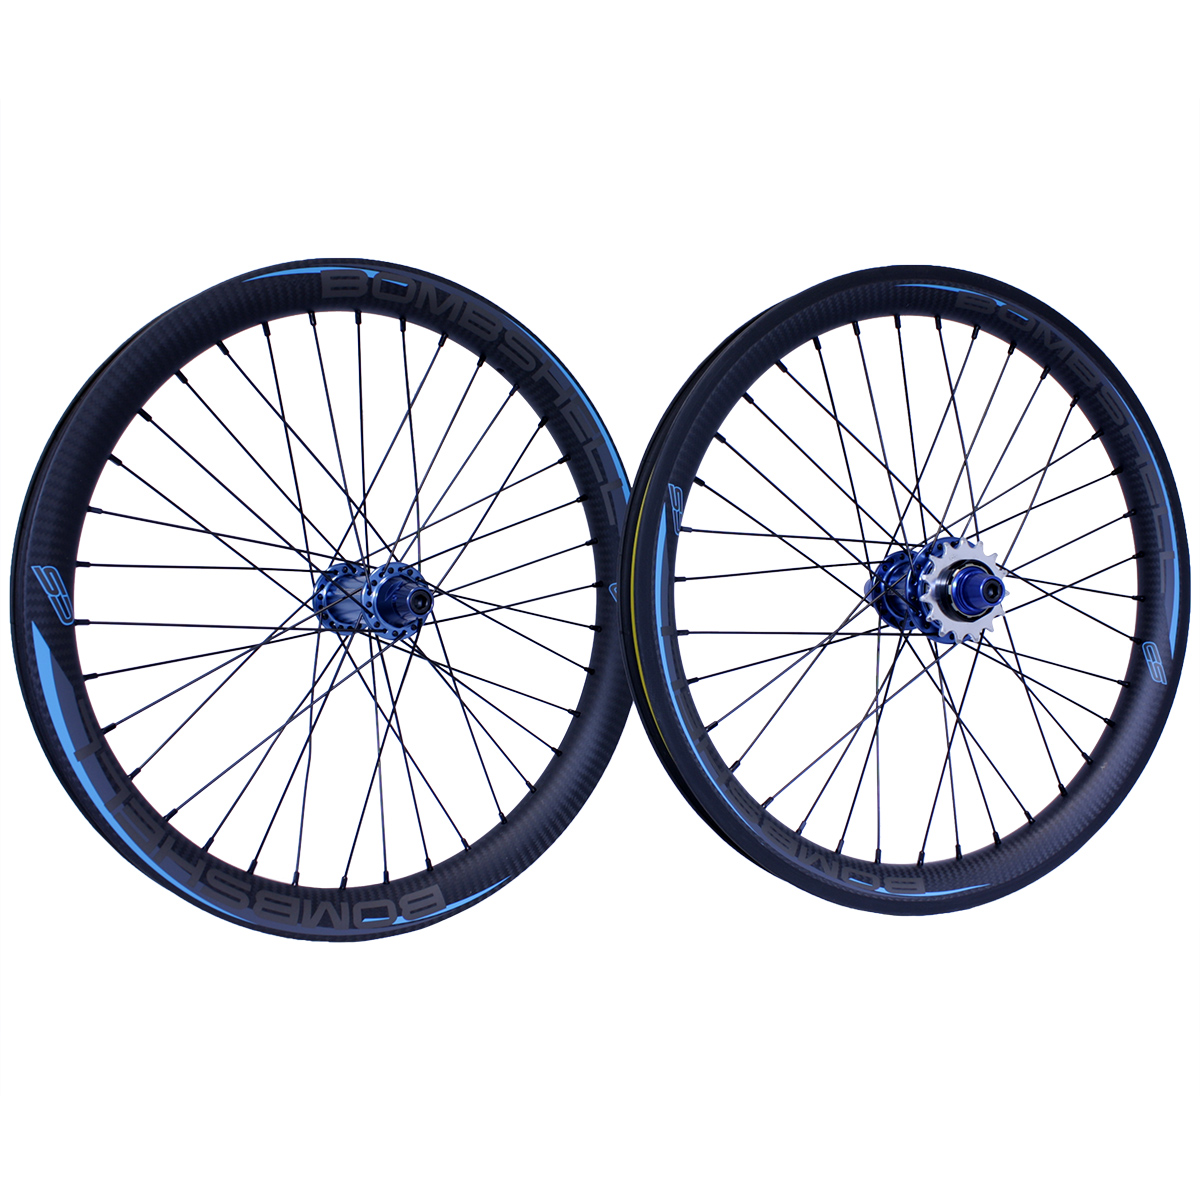 "Bombshell CSO CARBON PRO LIGHT 20x1.65"" WHEELSET 28H"